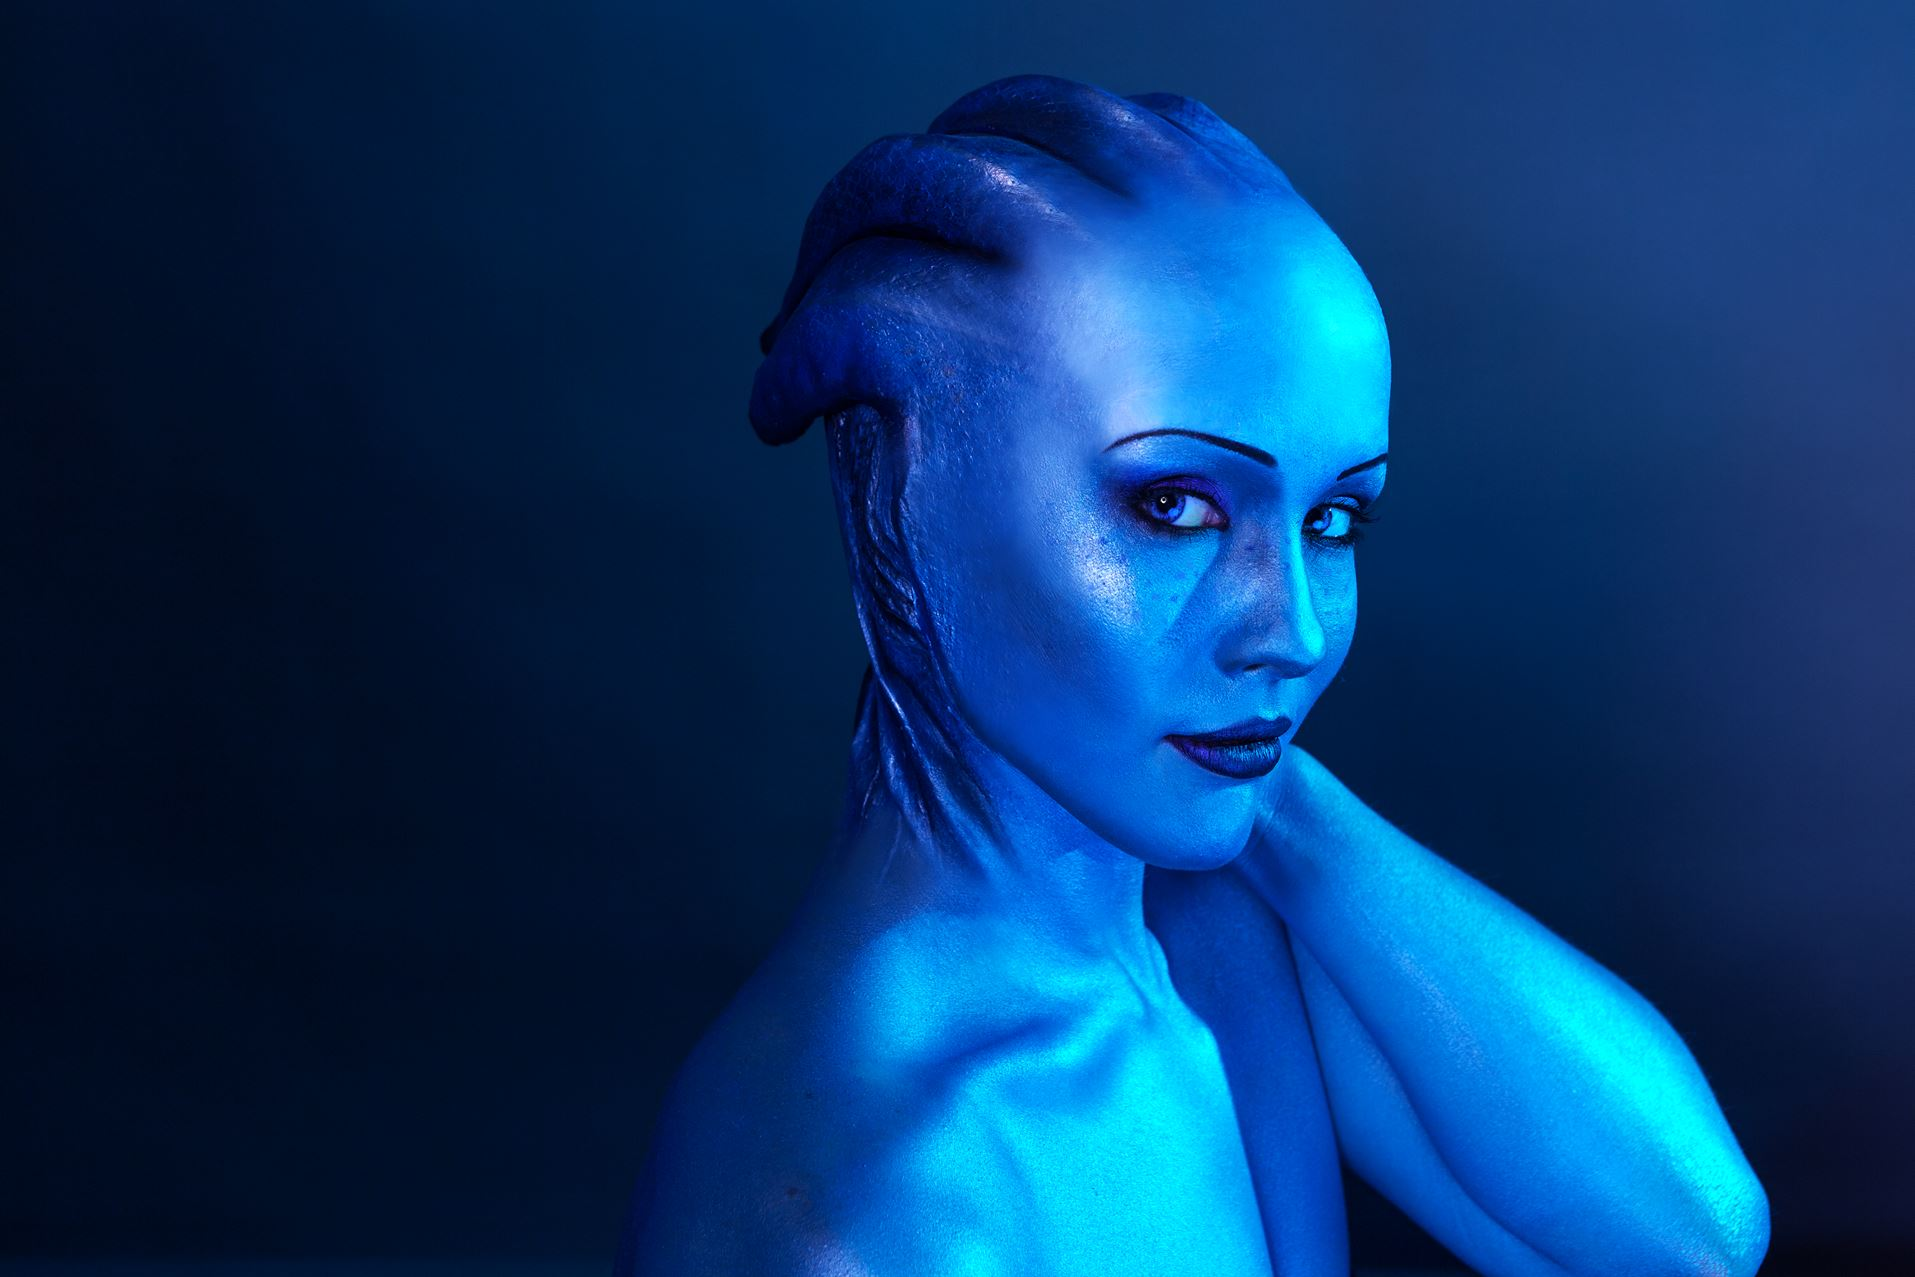 Check Out This Great Liara Mass Effect Cosplay Pc Gamer